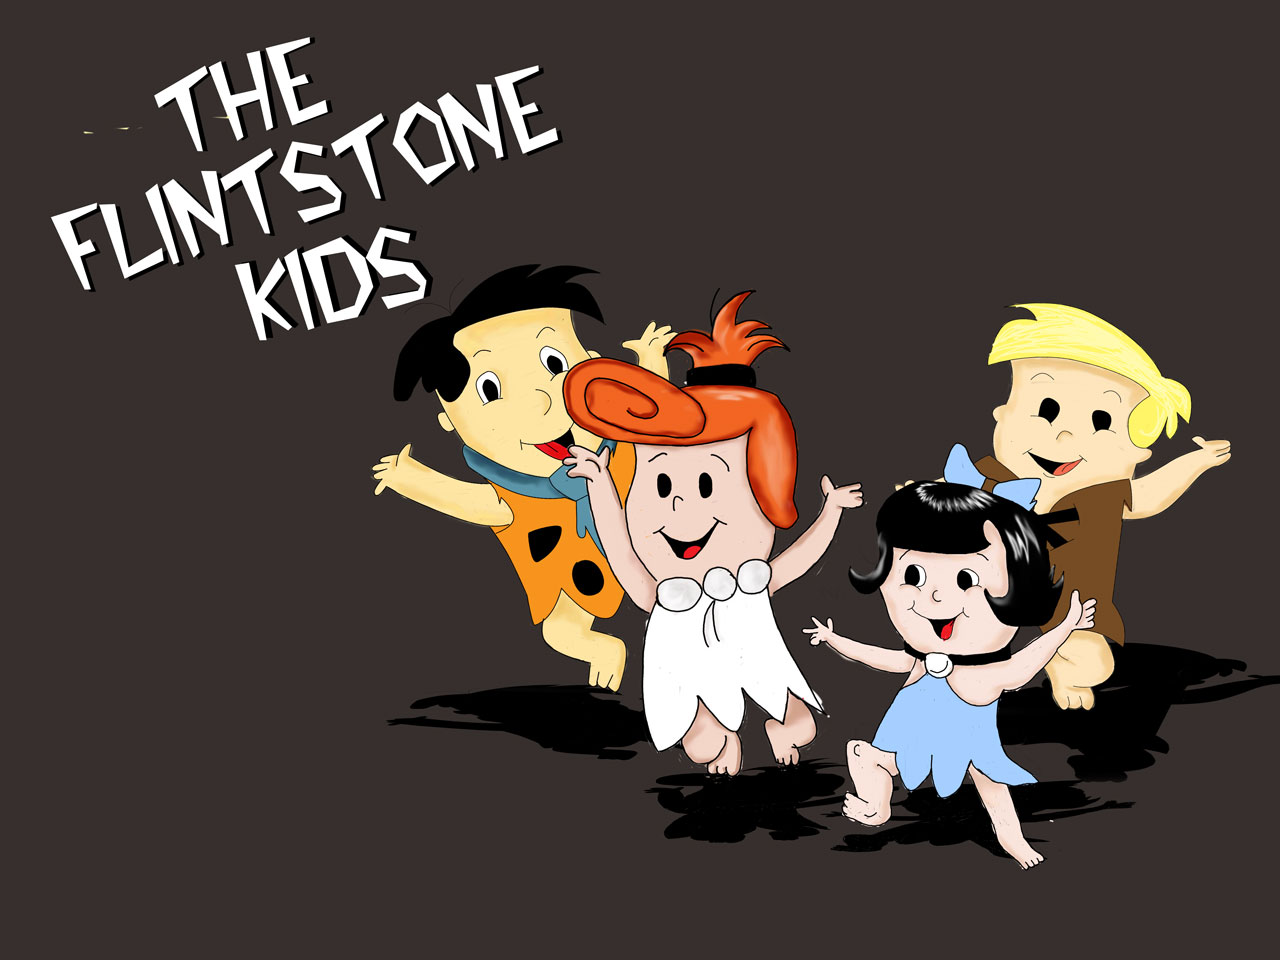 Flinstone Kids by moonburst23